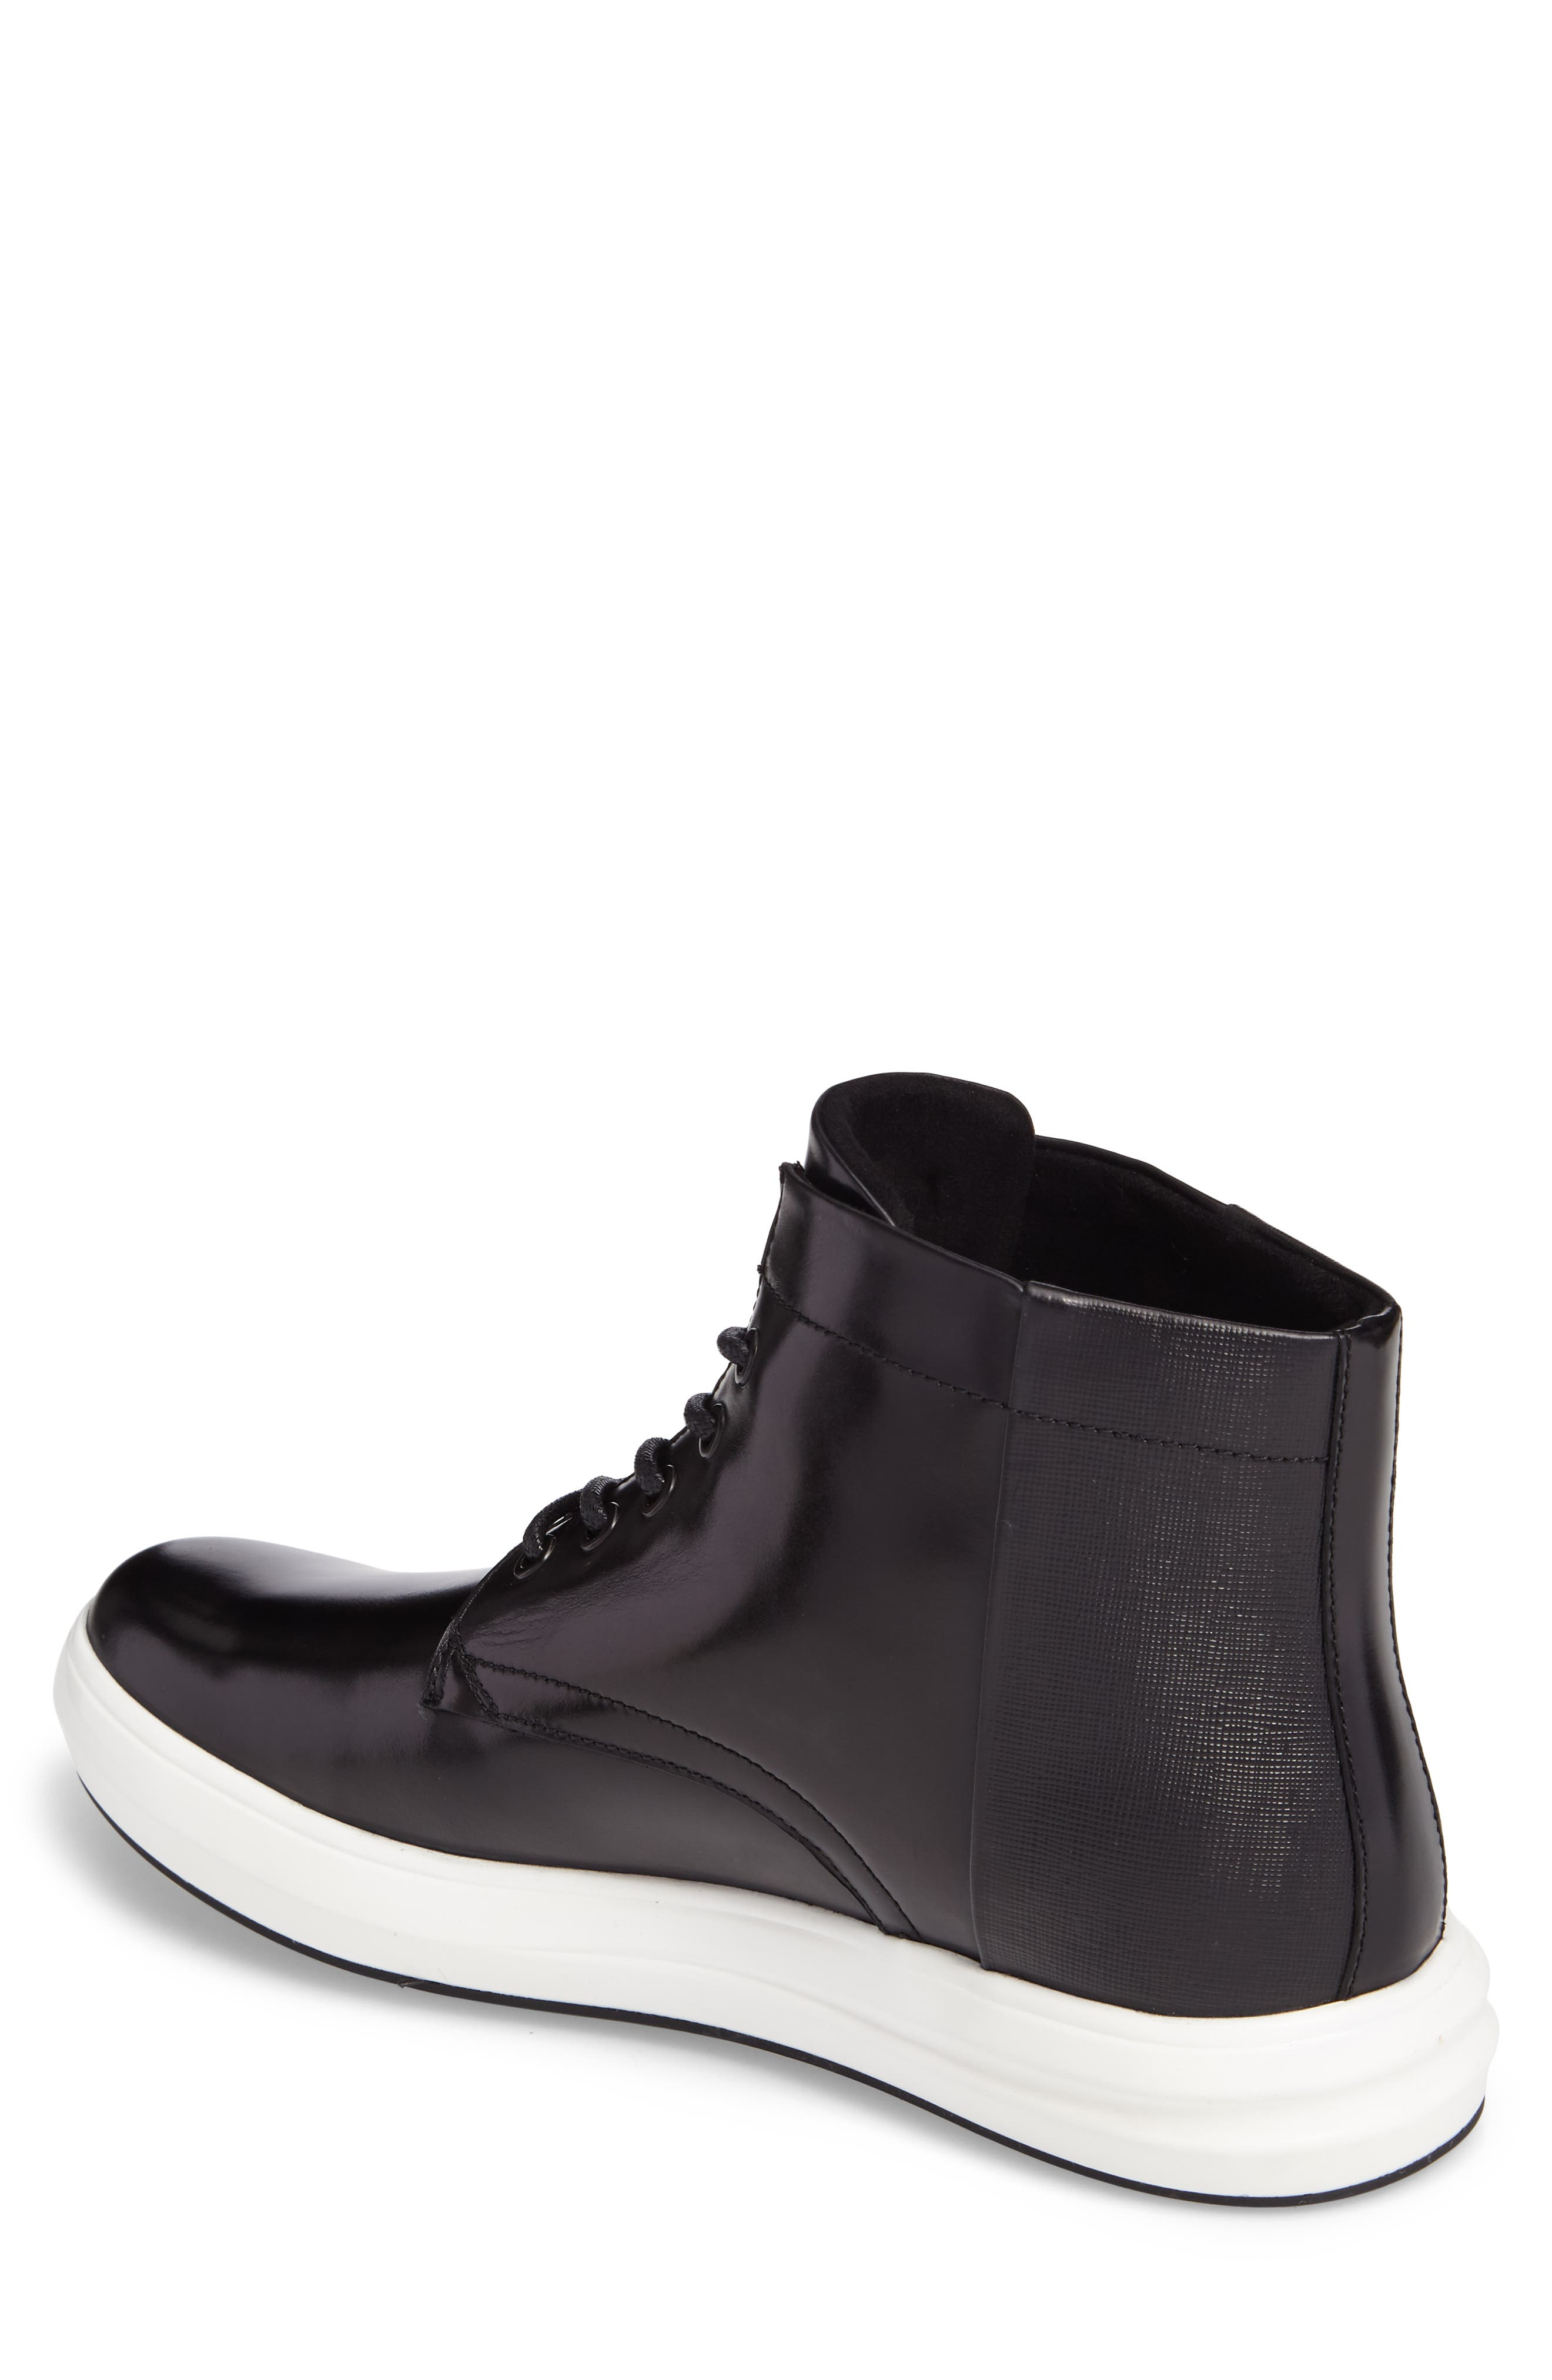 Alternate Image 2  - Kenneth Cole New York High Top Sneaker (Men)